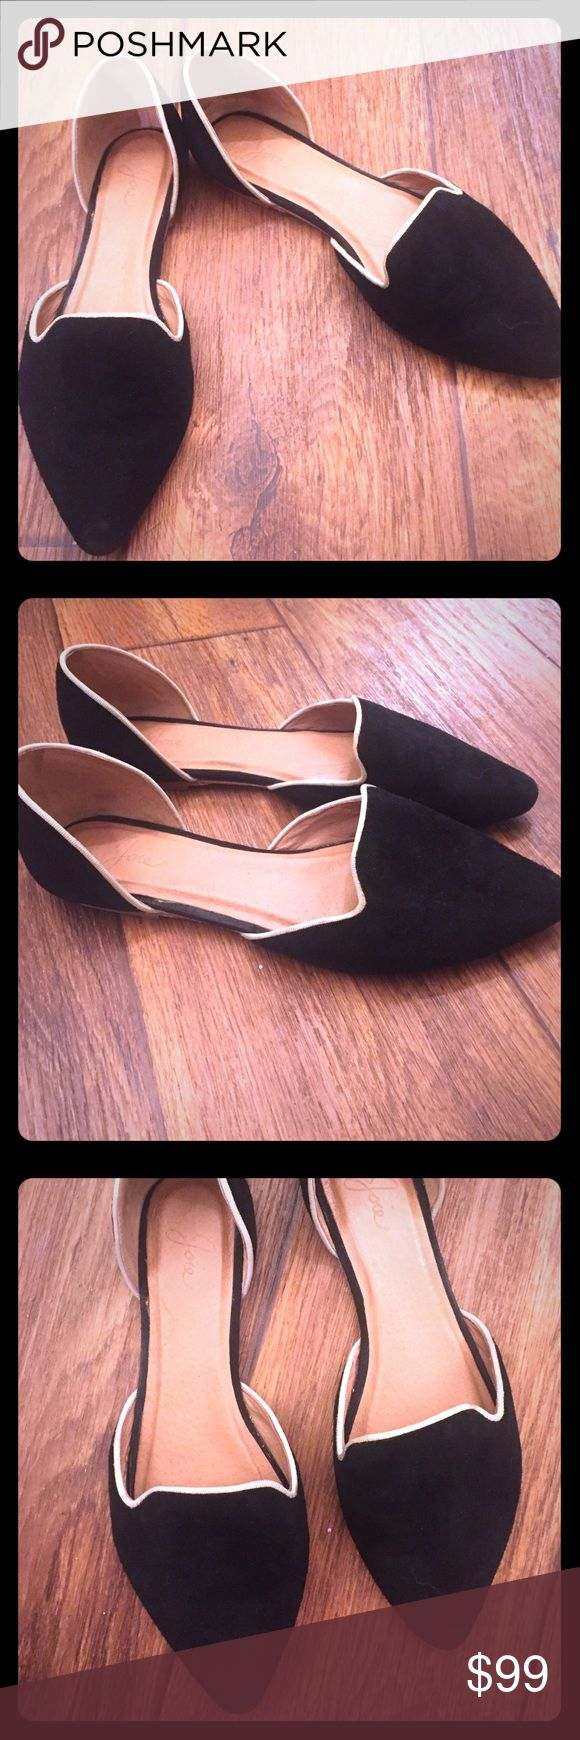 Joie Classy Flats NWOT Classy Flats NWOT BY Joie Joie Shoes Flats & Loafers